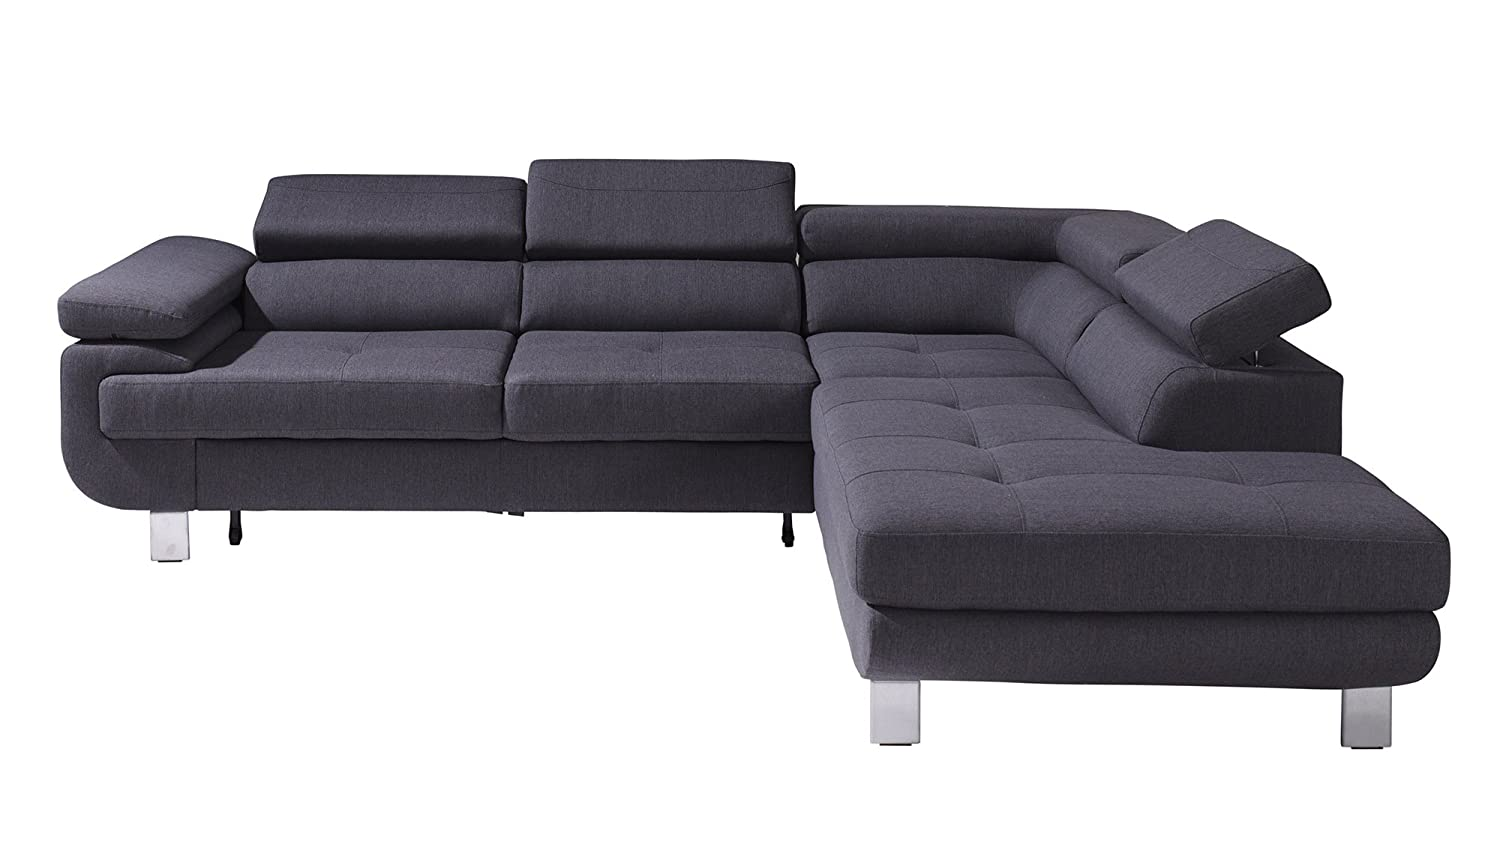 luccia grau stoff schlafsofa schlafcouch couch sofa garnitur mit bettkasten schlaffunktion. Black Bedroom Furniture Sets. Home Design Ideas